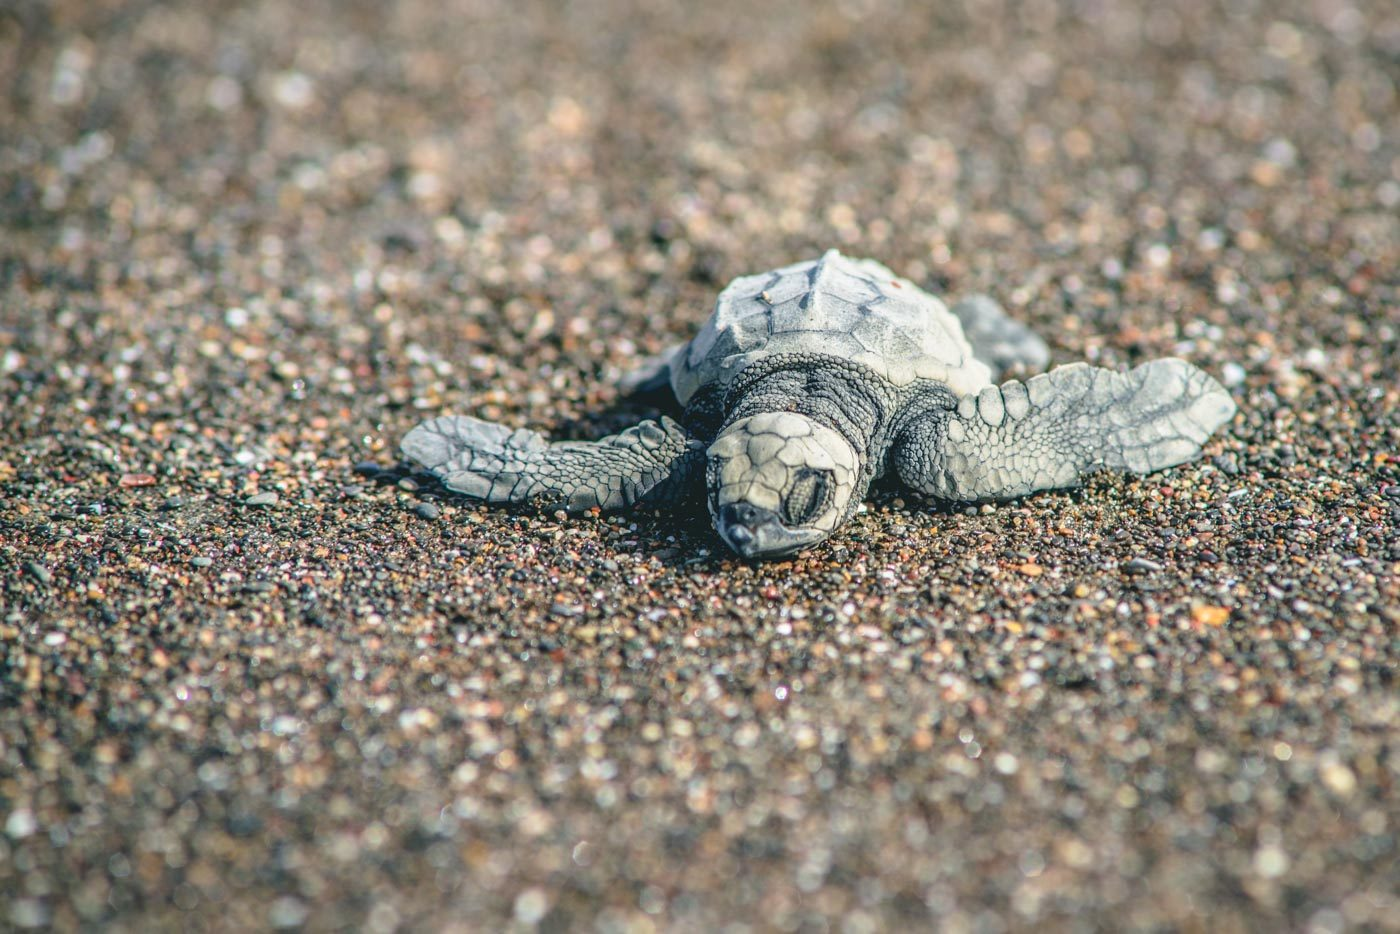 Baby turtle on a beach in Costa Rica